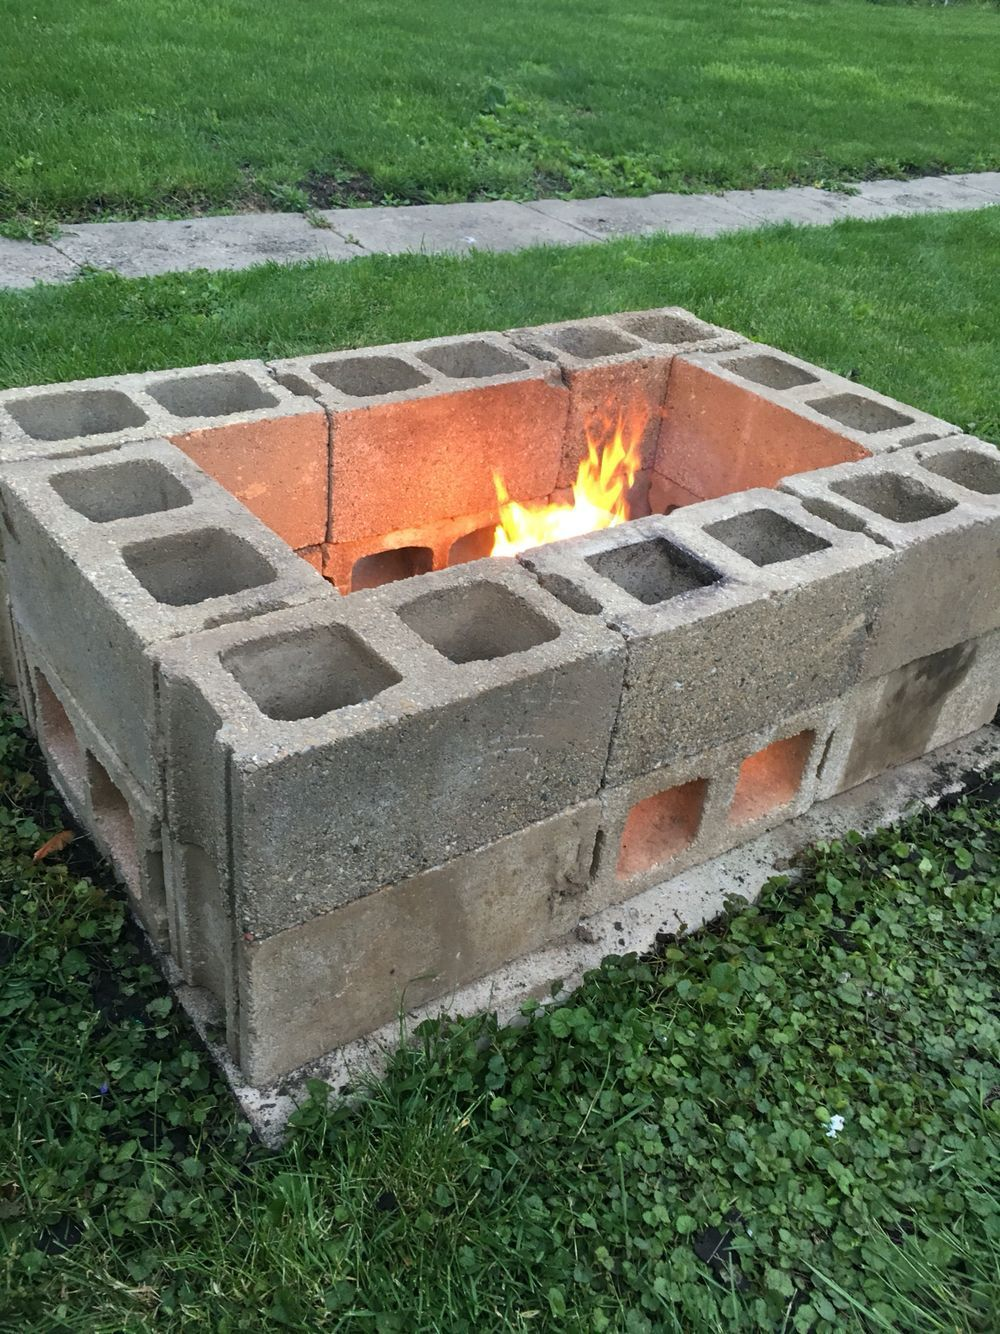 20 attractive diy firepit ideas ideas para el jardn parrilla y diy fireplace ideas outdoor firepit on a budget do it yourself firepit projects and solutioingenieria Images